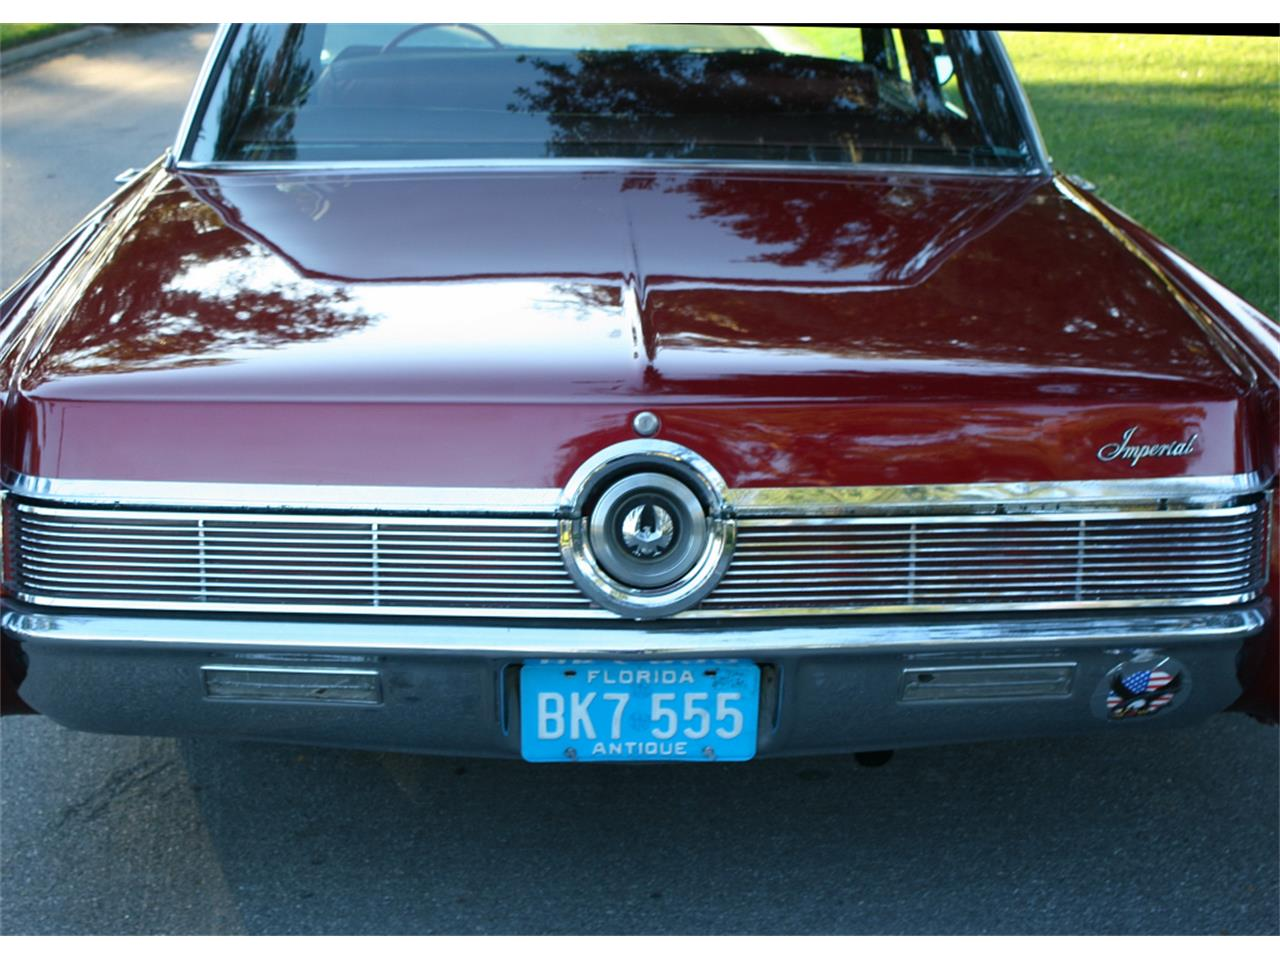 Large Picture of '68 Chrysler Imperial located in Lakeland Florida - MA1H